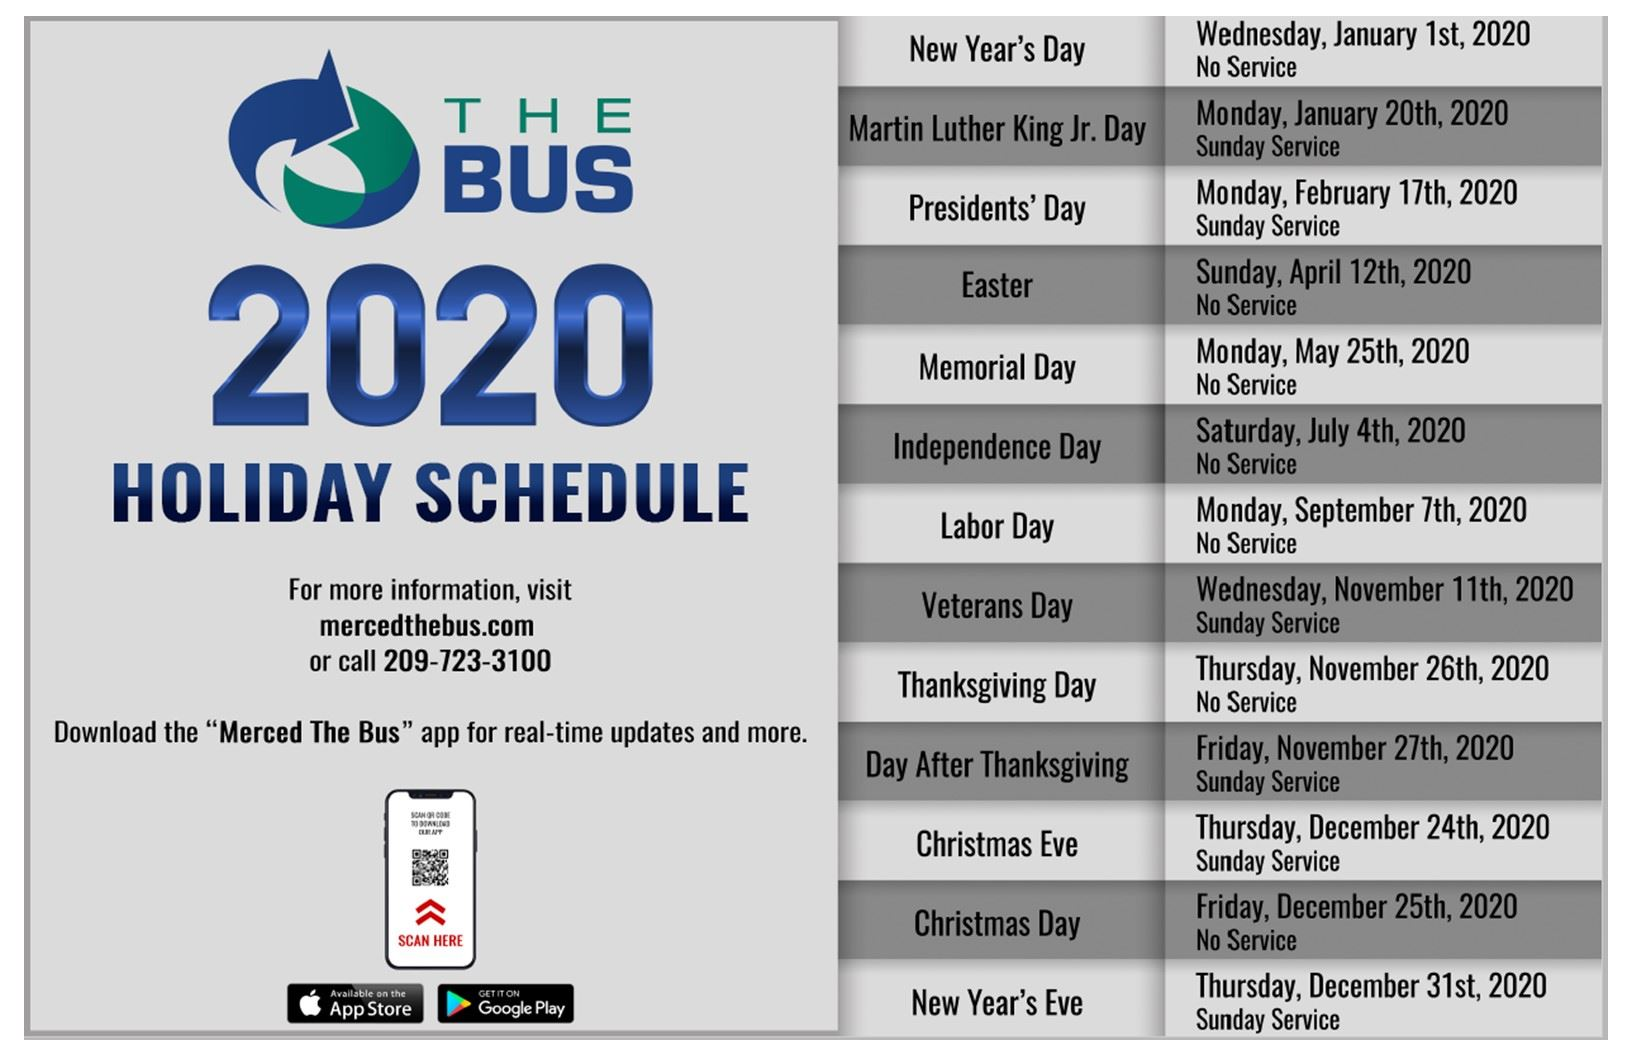 2020 Holiday Schedule